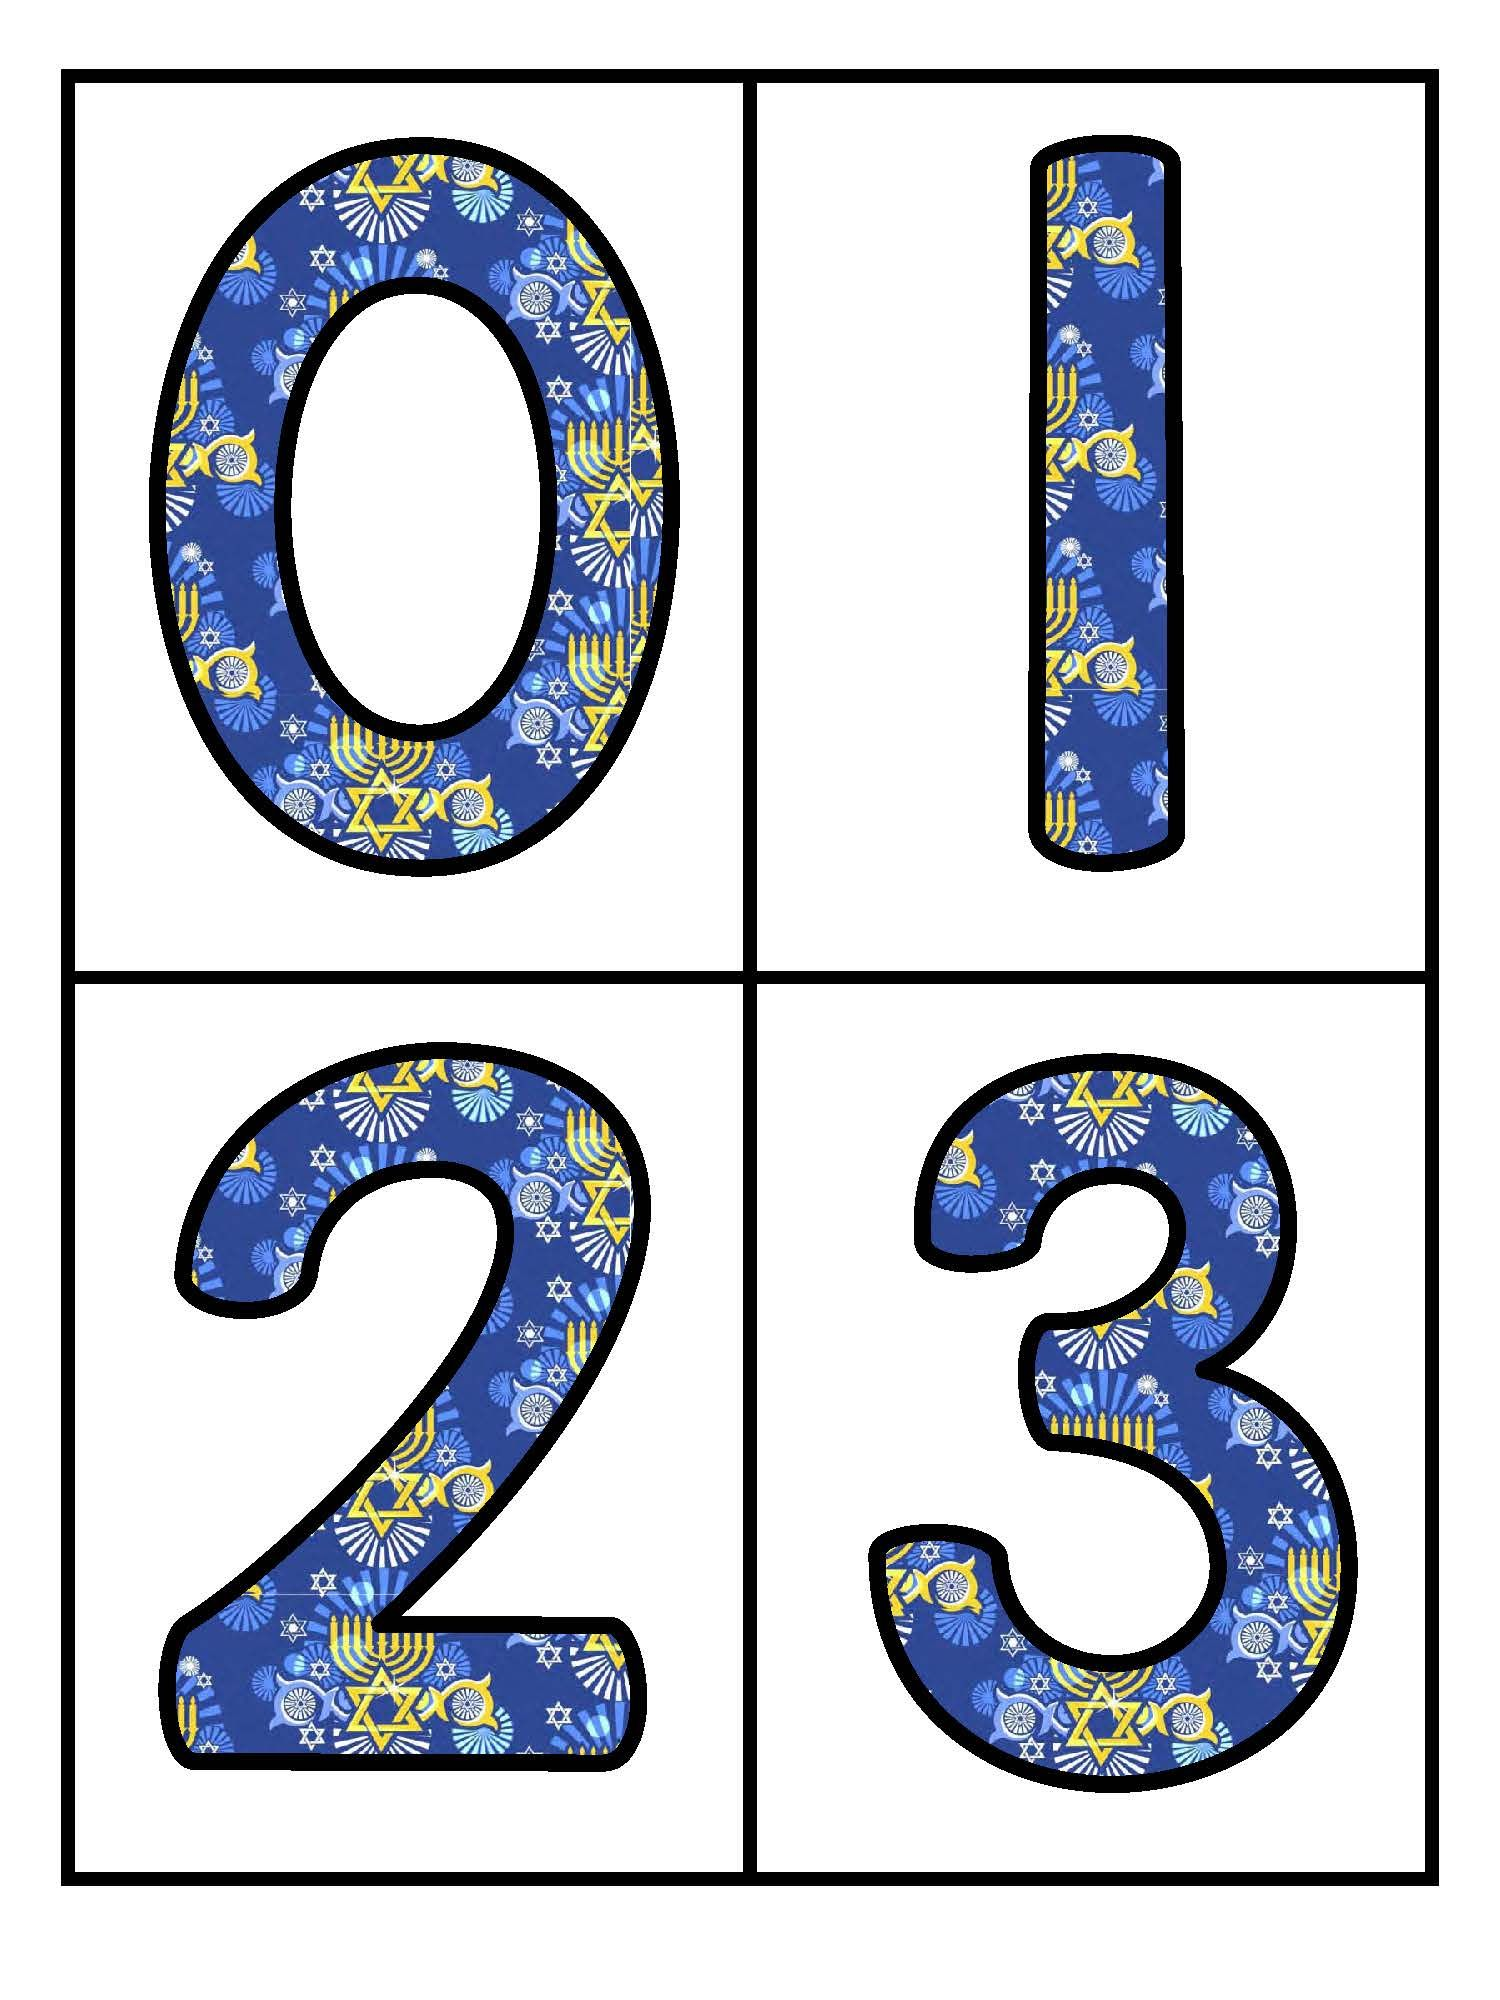 Free Large Number Flashcards With A Hanukkah Design 0 20 Use To Make Activities And For